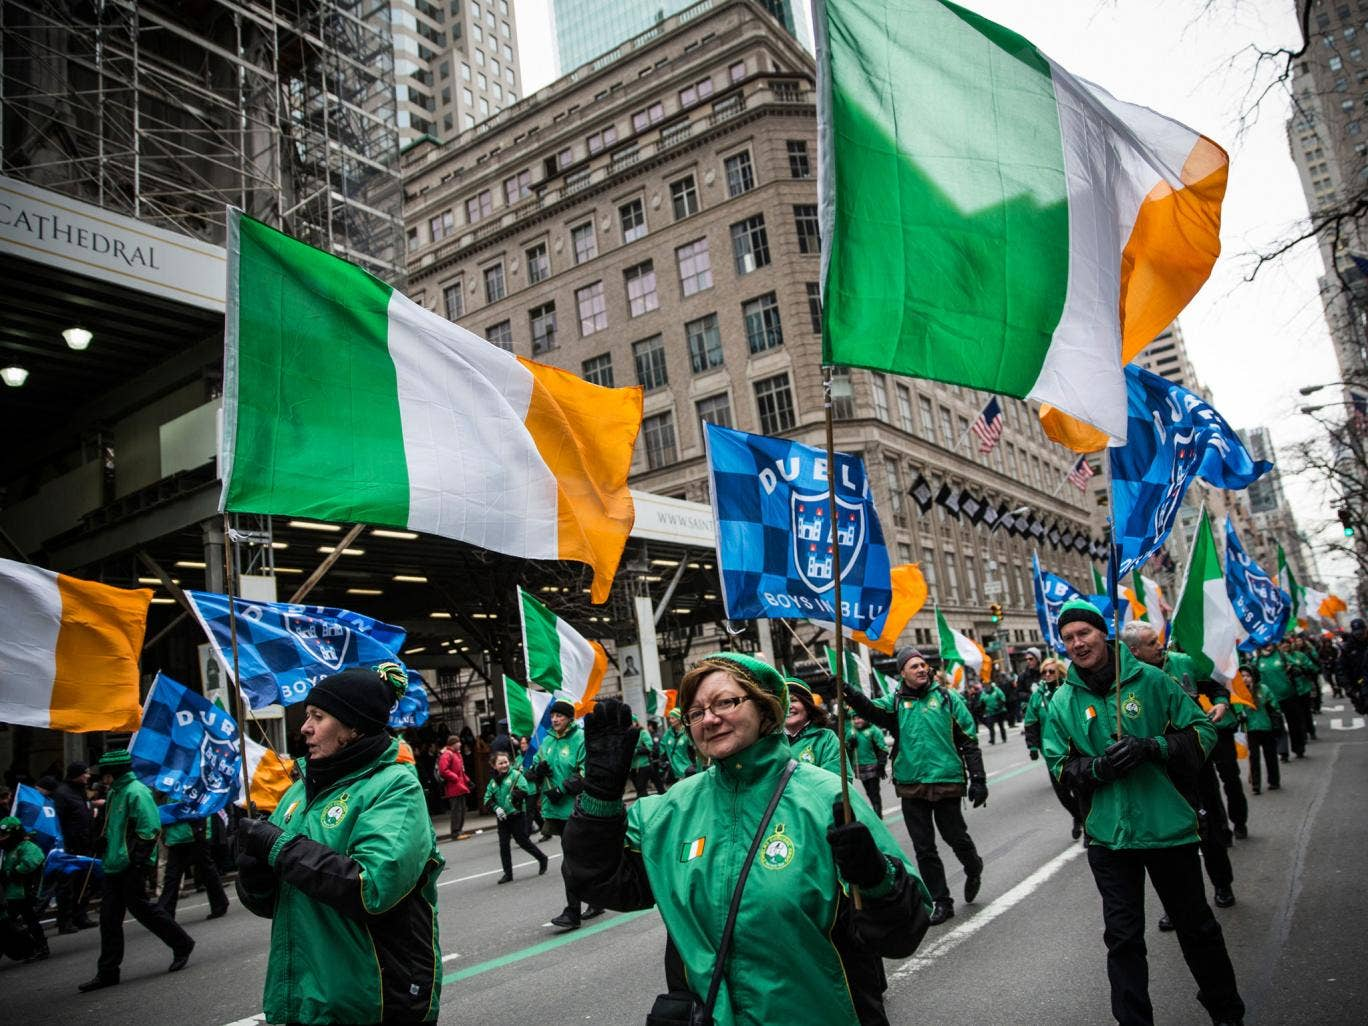 Guinness, normally a generous sponsor of the annual march, has withdrawn its support for the event